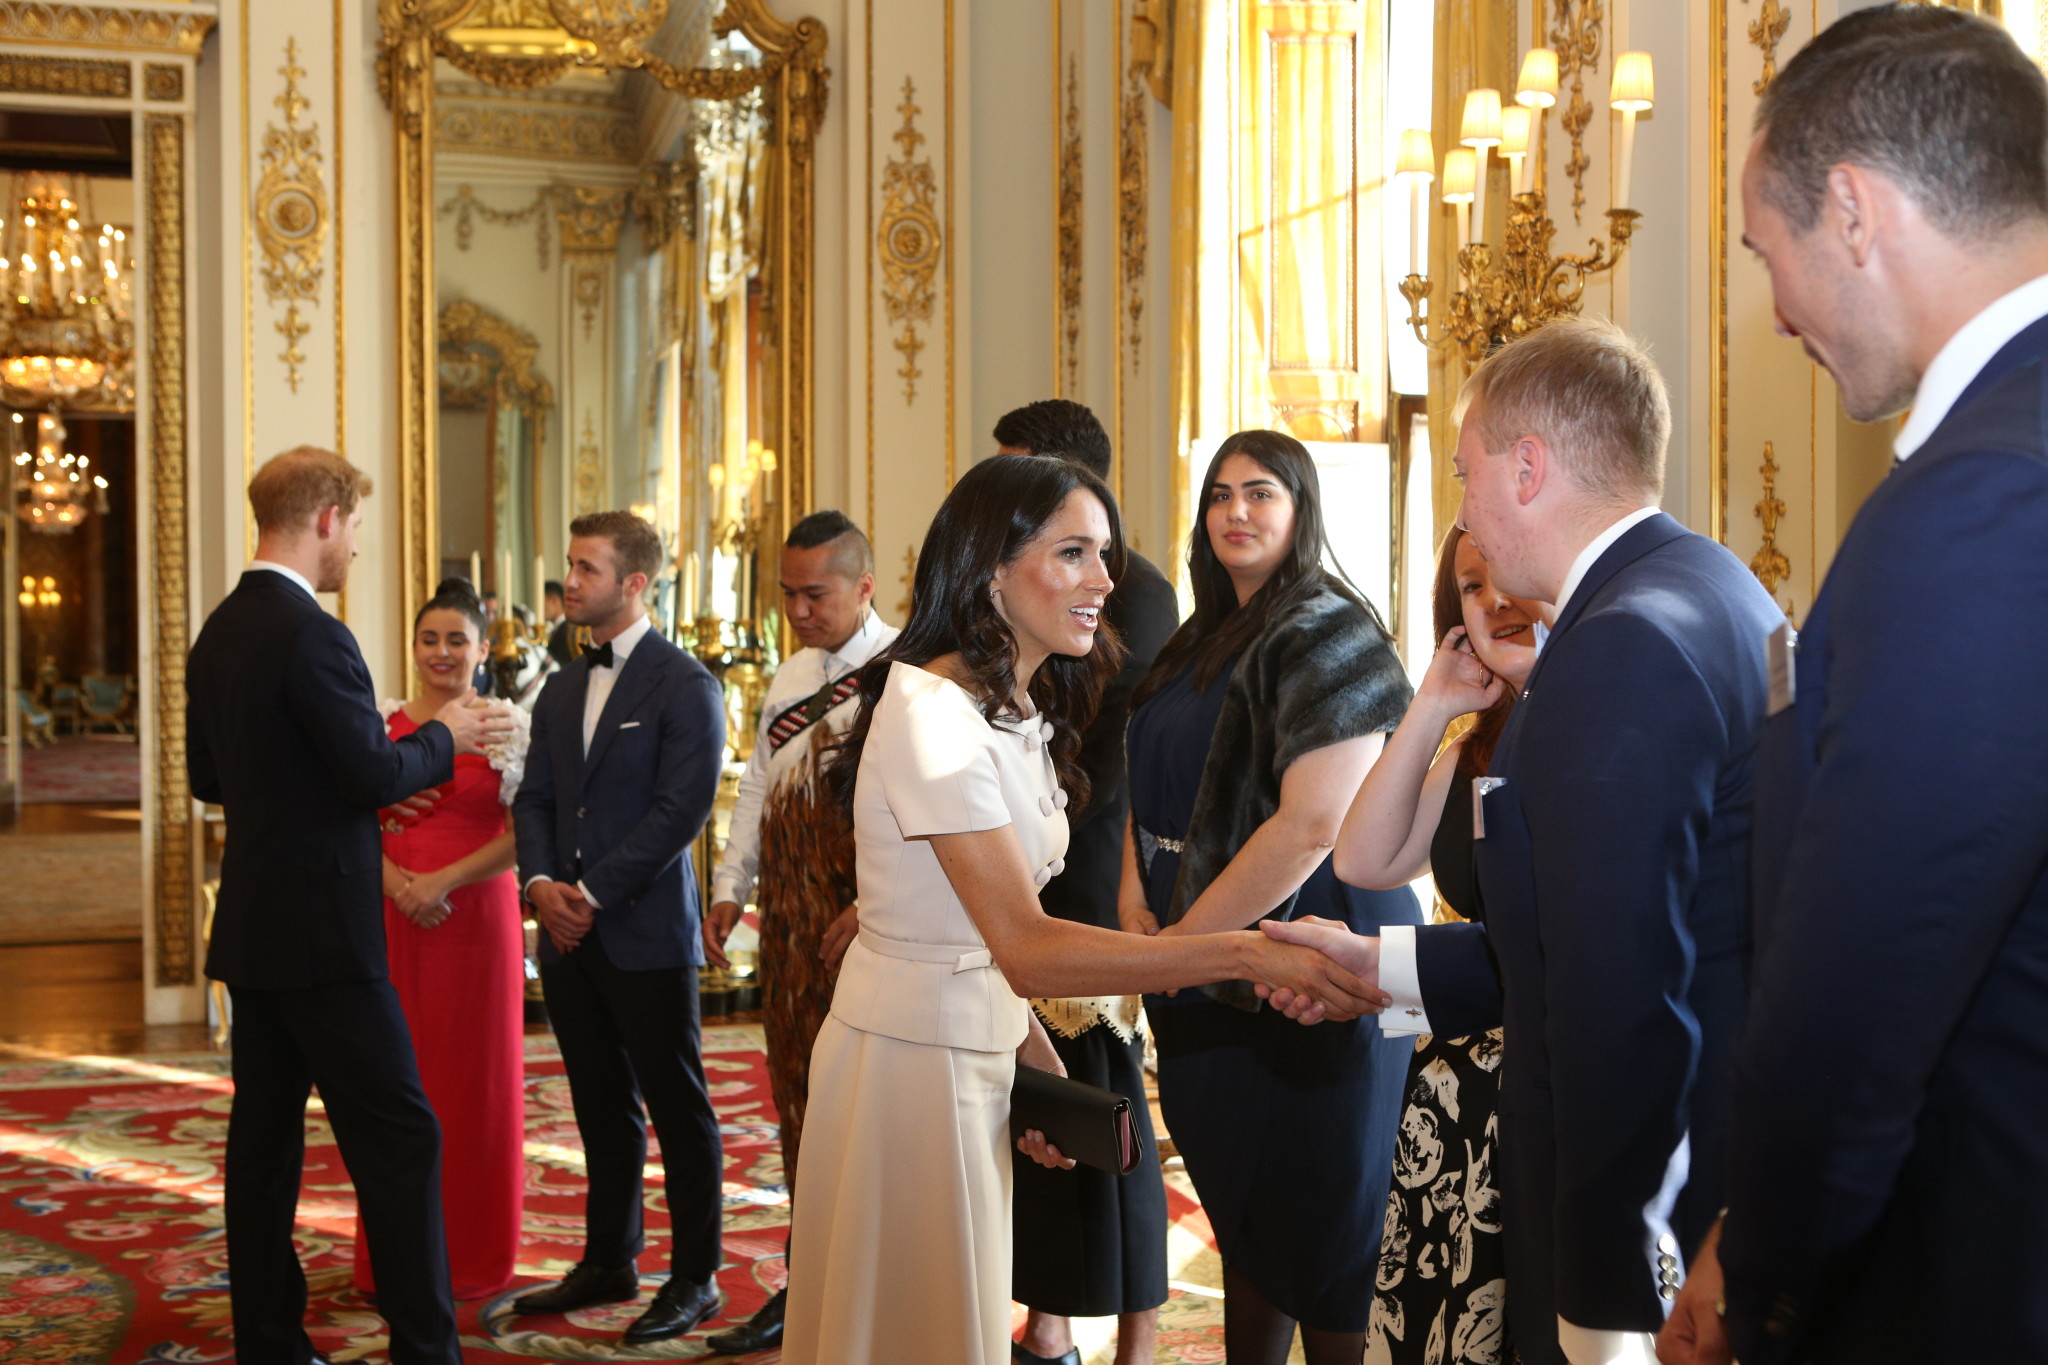 Her Majesty The Queen presents Awards to the 2018 Queen's Young Leaders Award winners at Buckingham Palace. Their Royal Highnesses The Duke and Duchess Of Sussex and The Rt Hon Sir John Major KG CH, Chairman of The Queen Elizabeth Diamond Jubilee Trust also joined The Award winners to congratulate them on their remarkable achievements. Guests at the ceremony include Sir John Major, David Beckham OBE, Sir Lenny Henry CBE, Nicola Adams OBE, Neelam Gill, Caspar Lee, Tina Daheley, Emma Gannon and Ore Oduba.